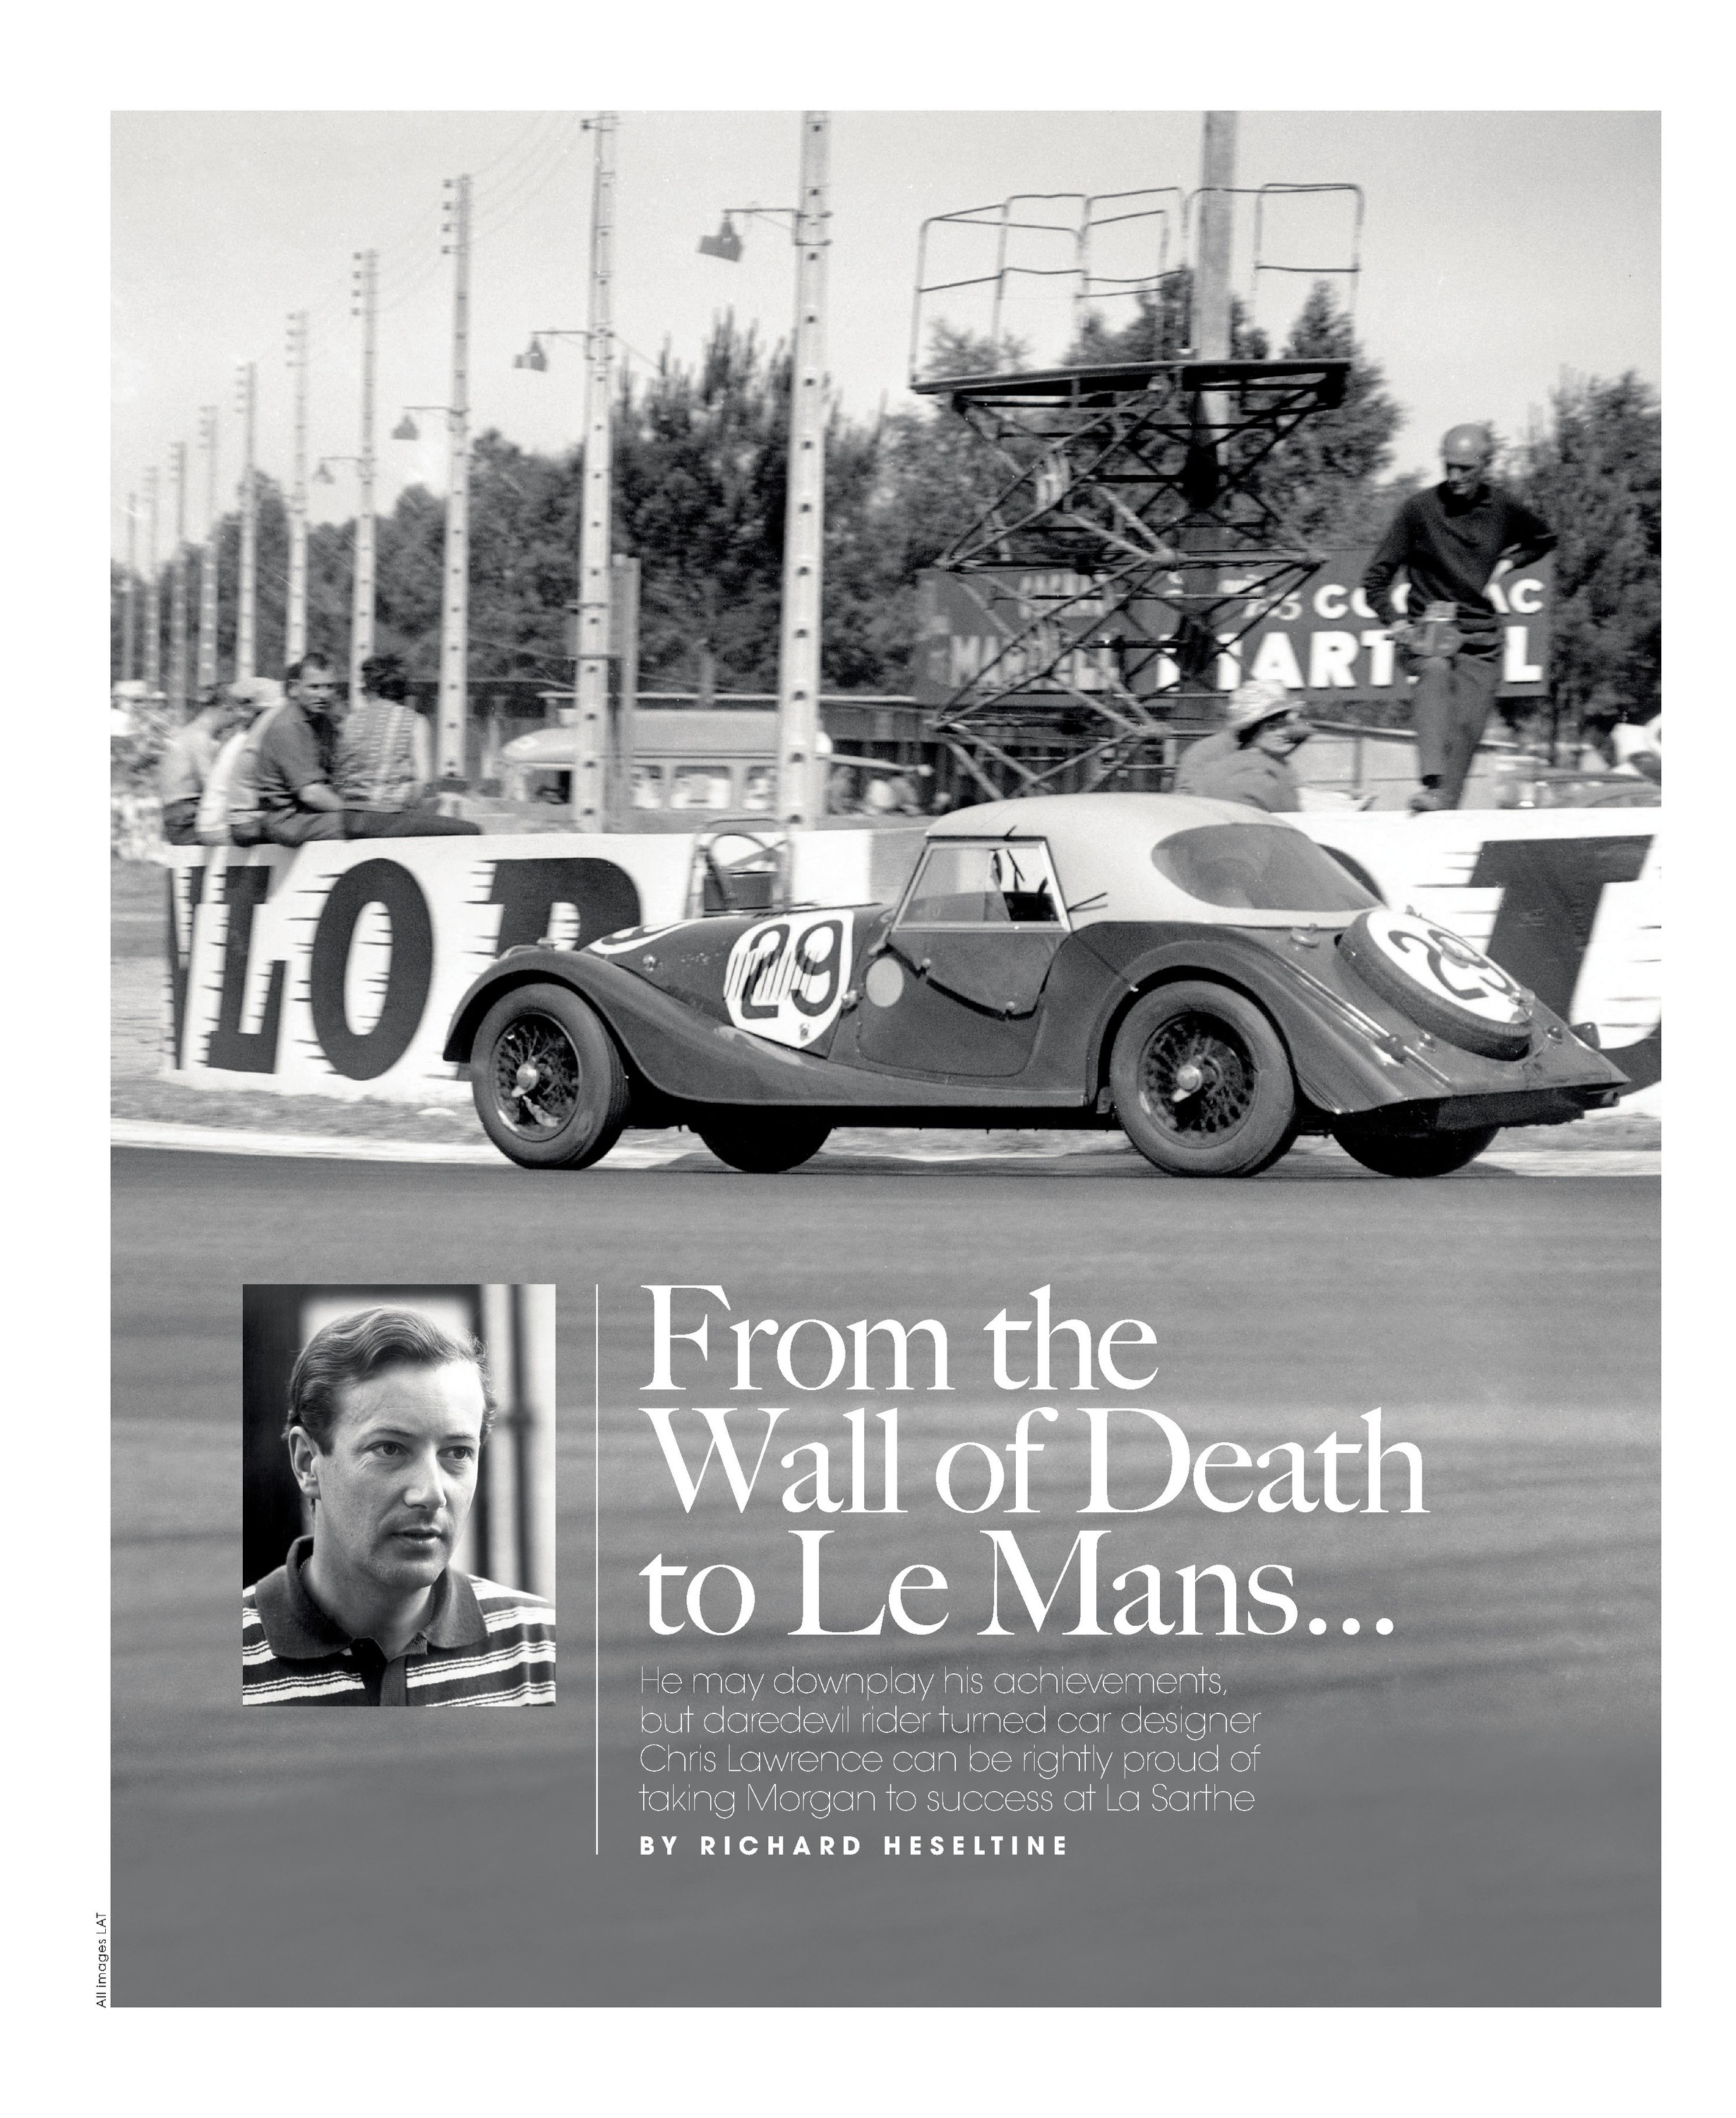 From the Wall of Death to Le Mans... image